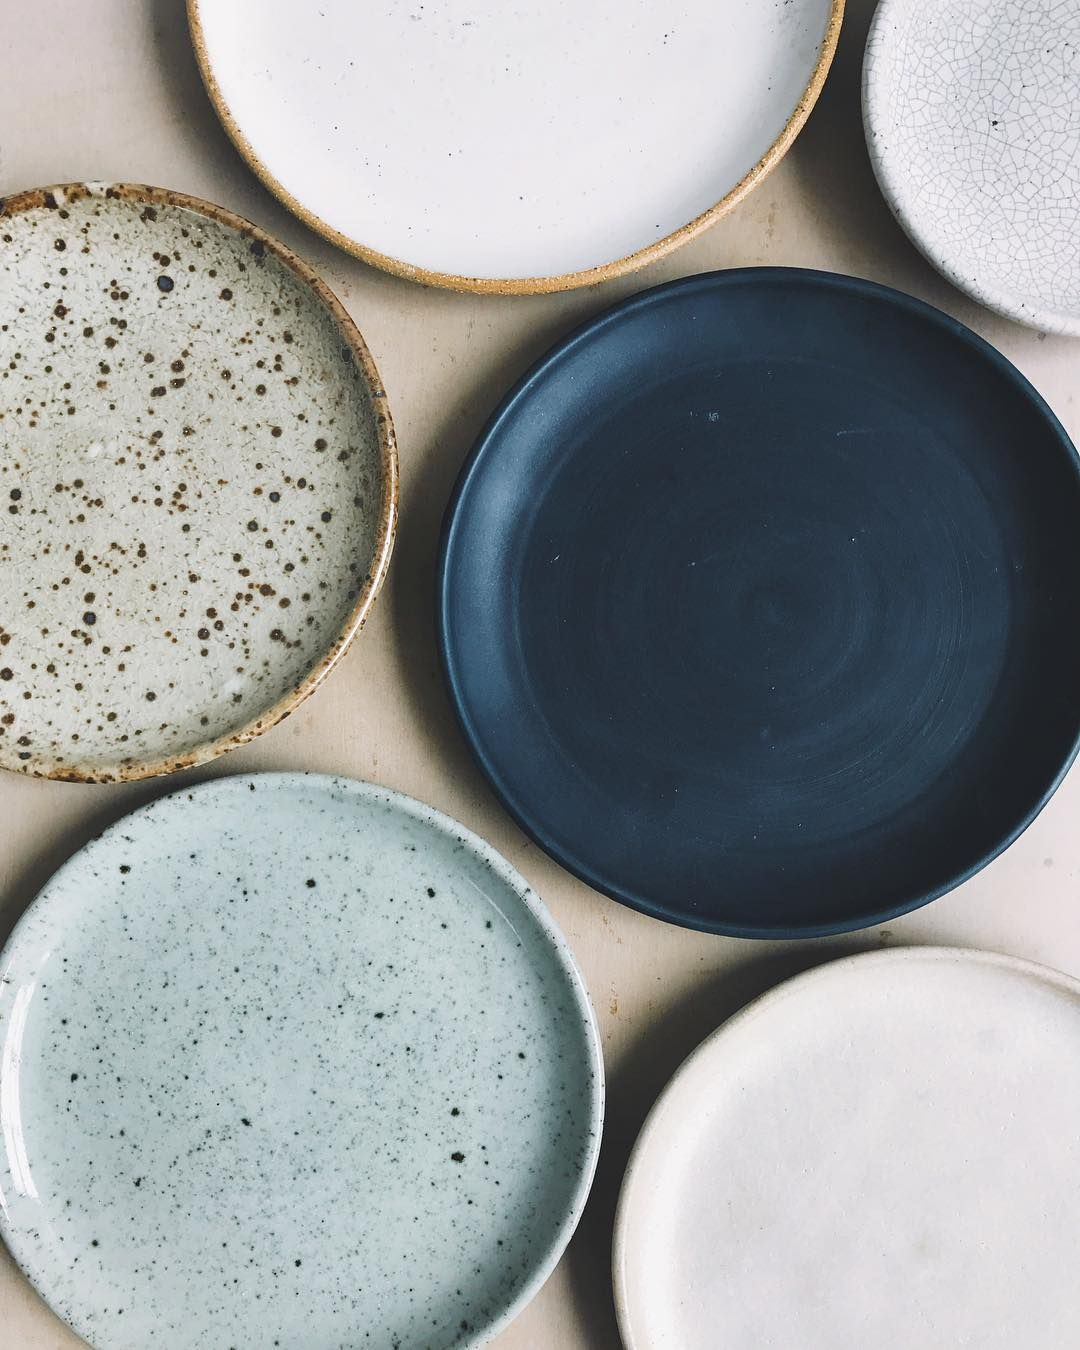 Pin by Elke Blyweert on interior   Pinterest   Pottery, Kitchens and ...